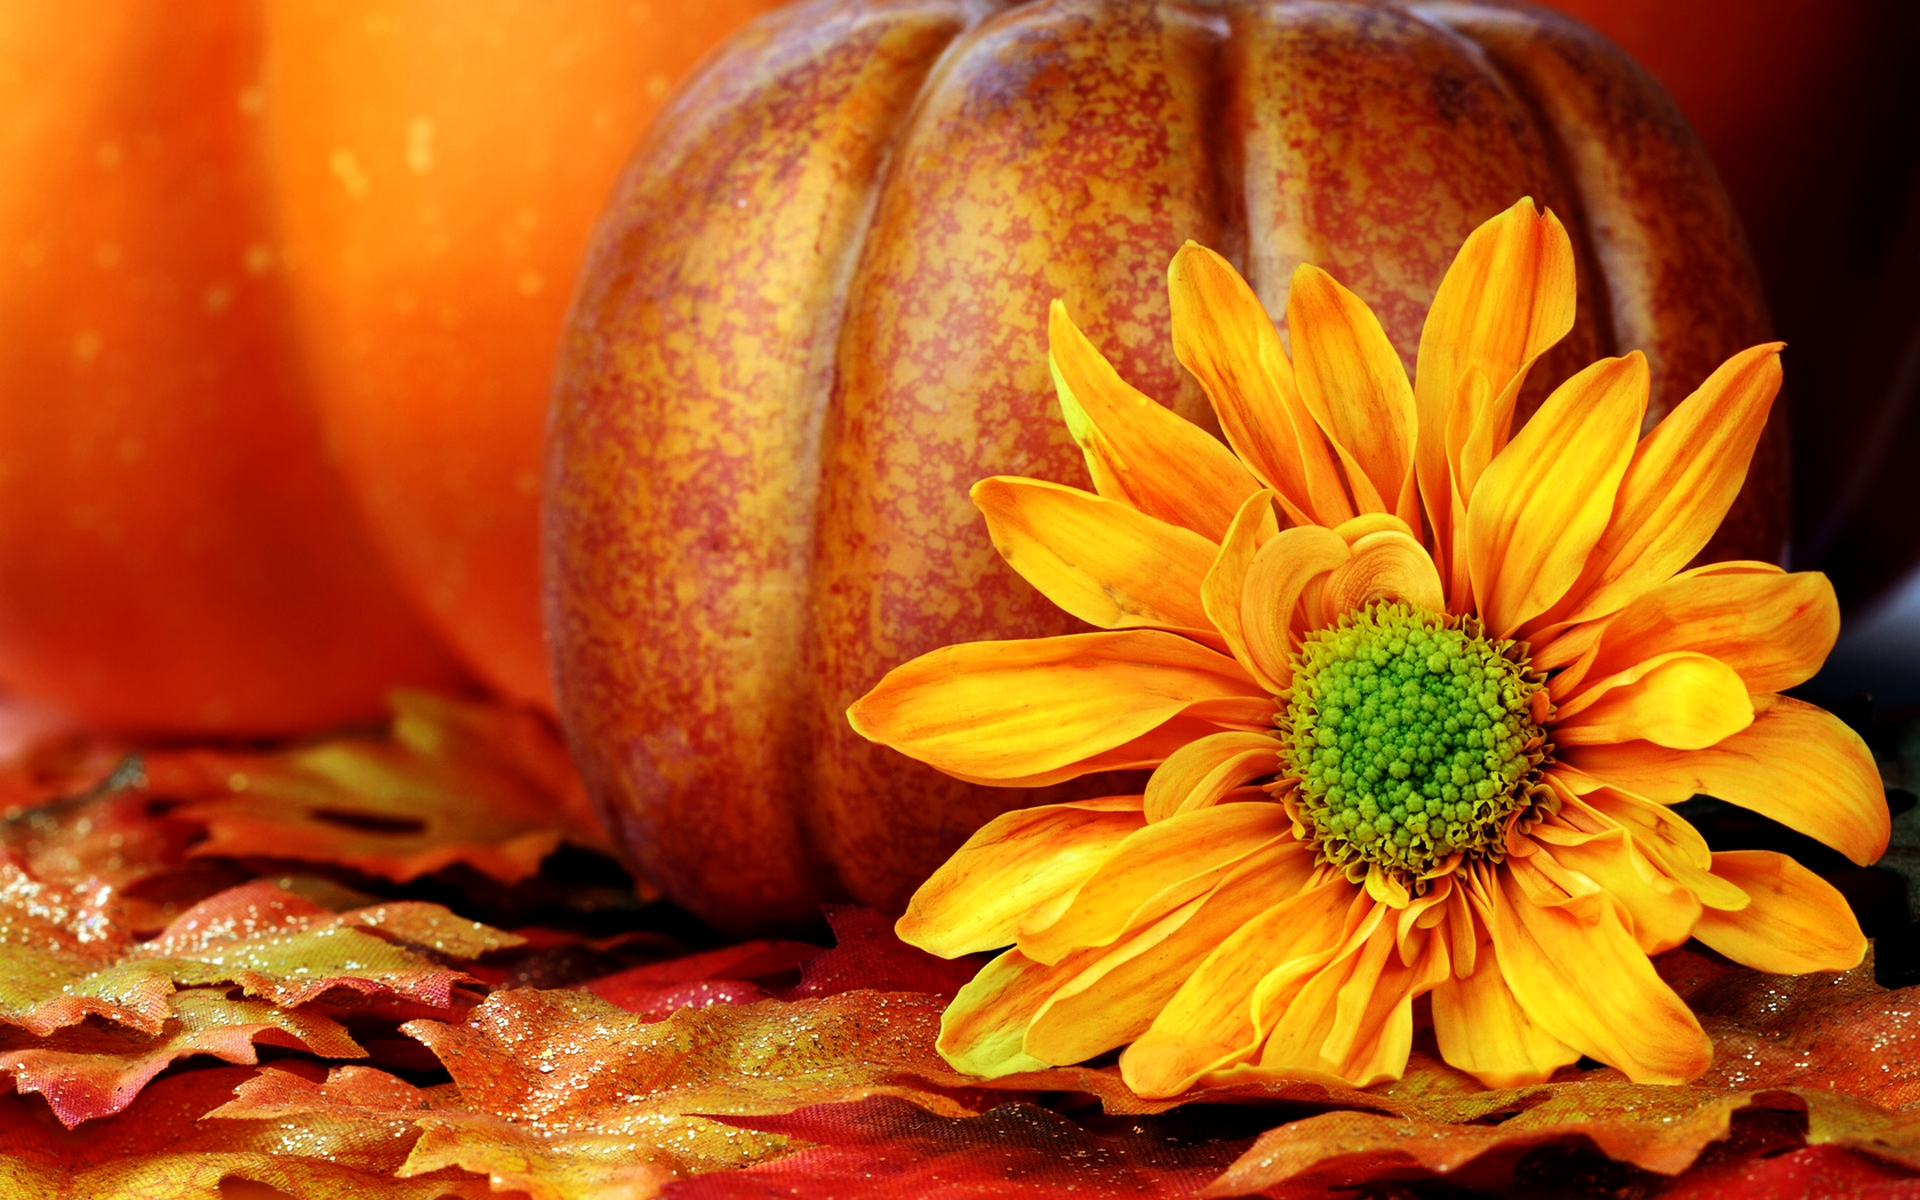 75 Free Pumpkin Wallpaper Backgrounds On Wallpapersafari